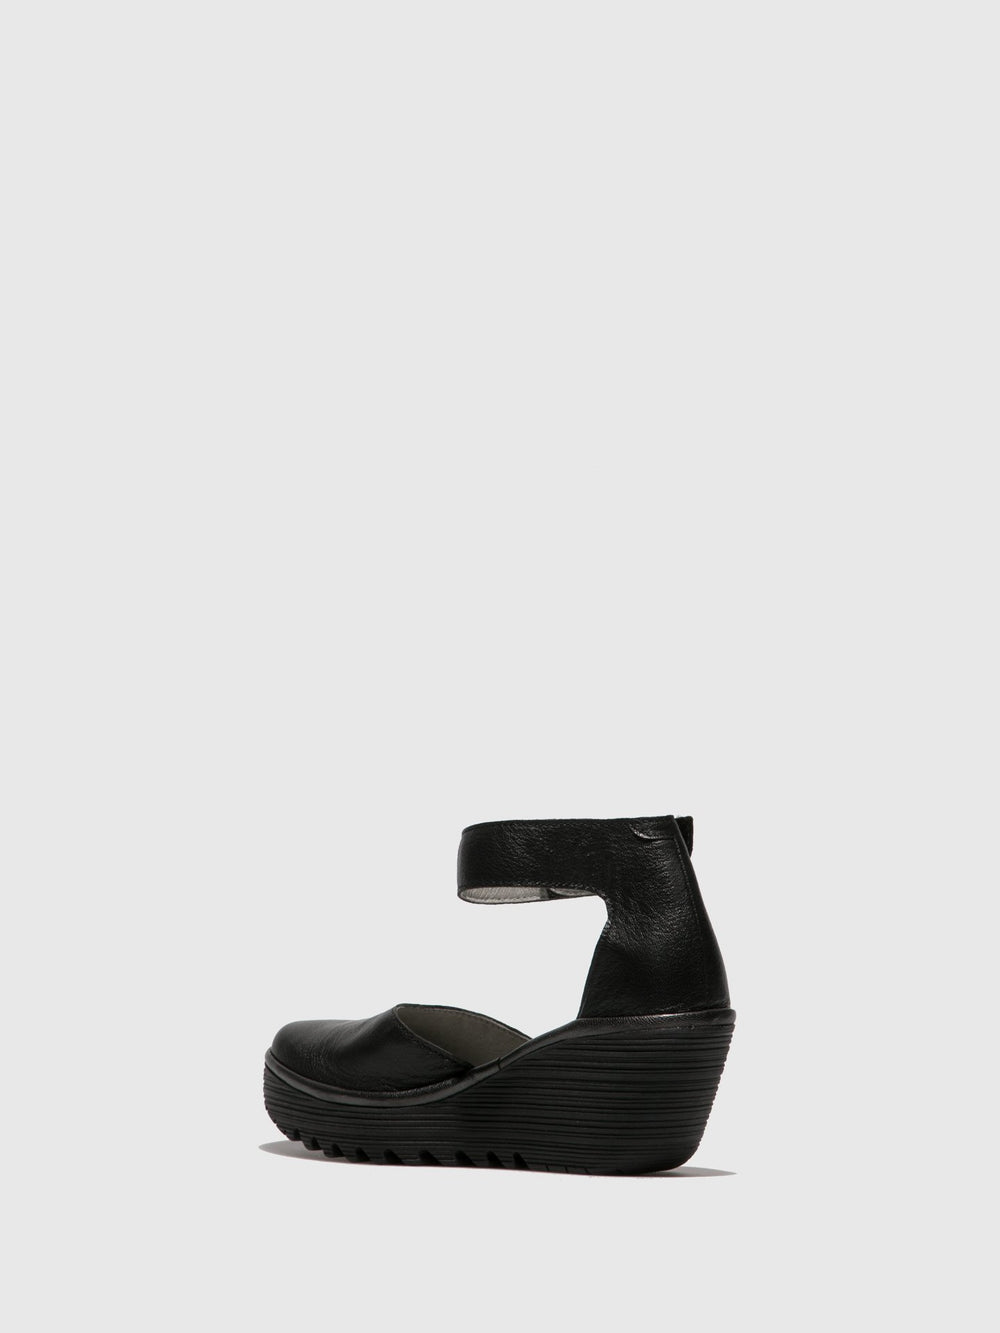 Ankle Strap Sandals YAND709FLY BLACK/GRAPHITE